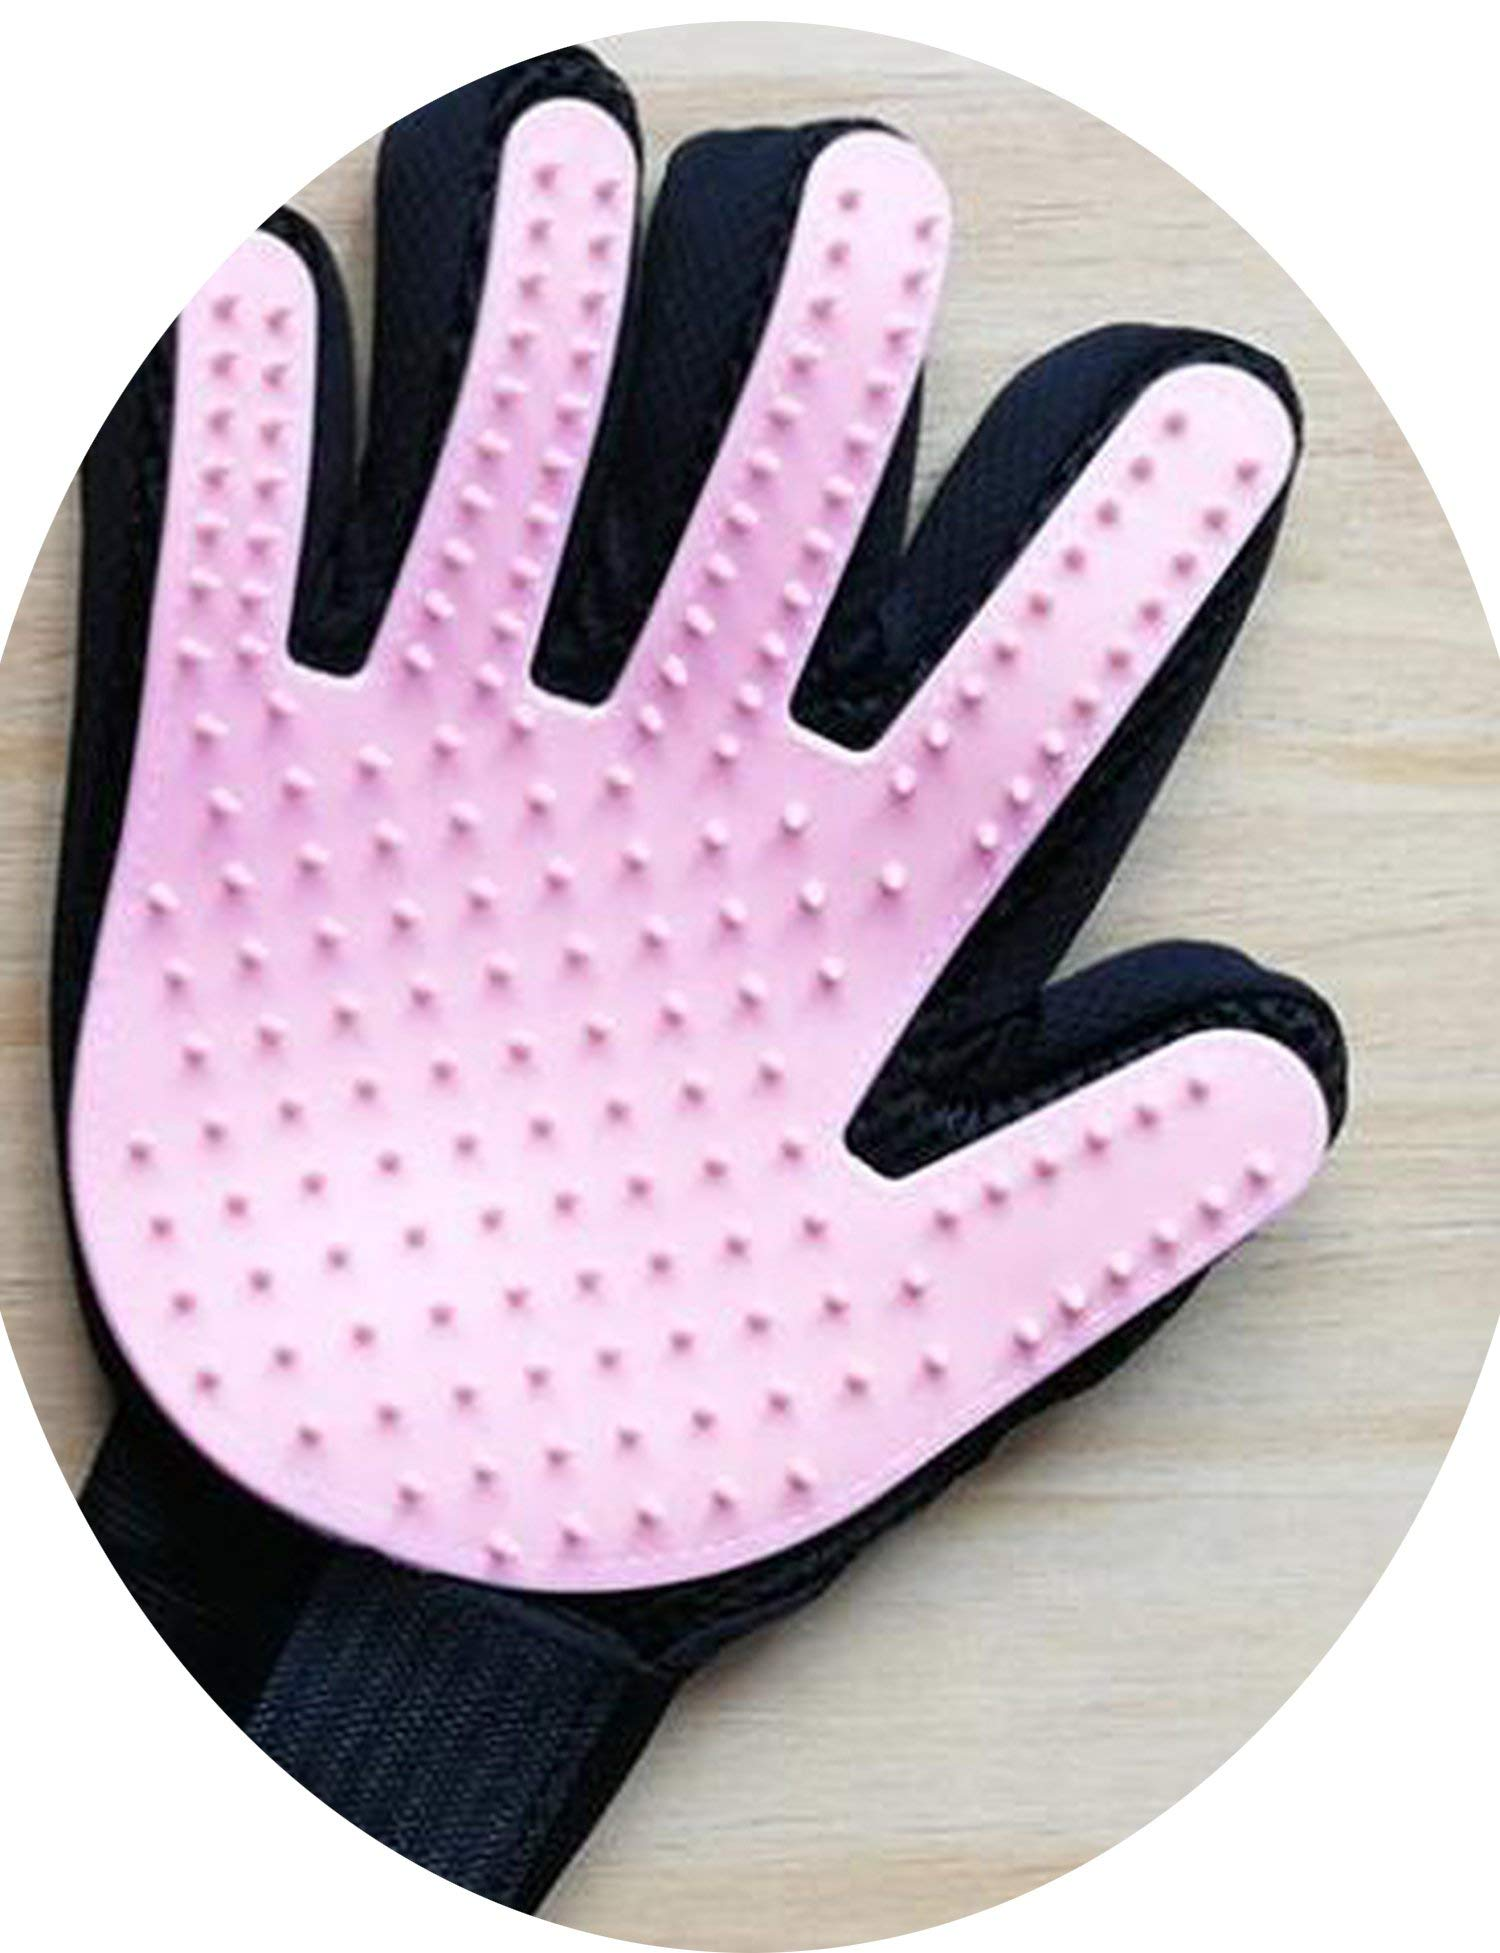 ZZmeet Pet Hair Glove Comb Pet Dog Cat Grooming Cleaning Glove Left Right Hand Hair Removal Brush Promote Blood Circulation 20pcs/lot,Pink Right Hand,L